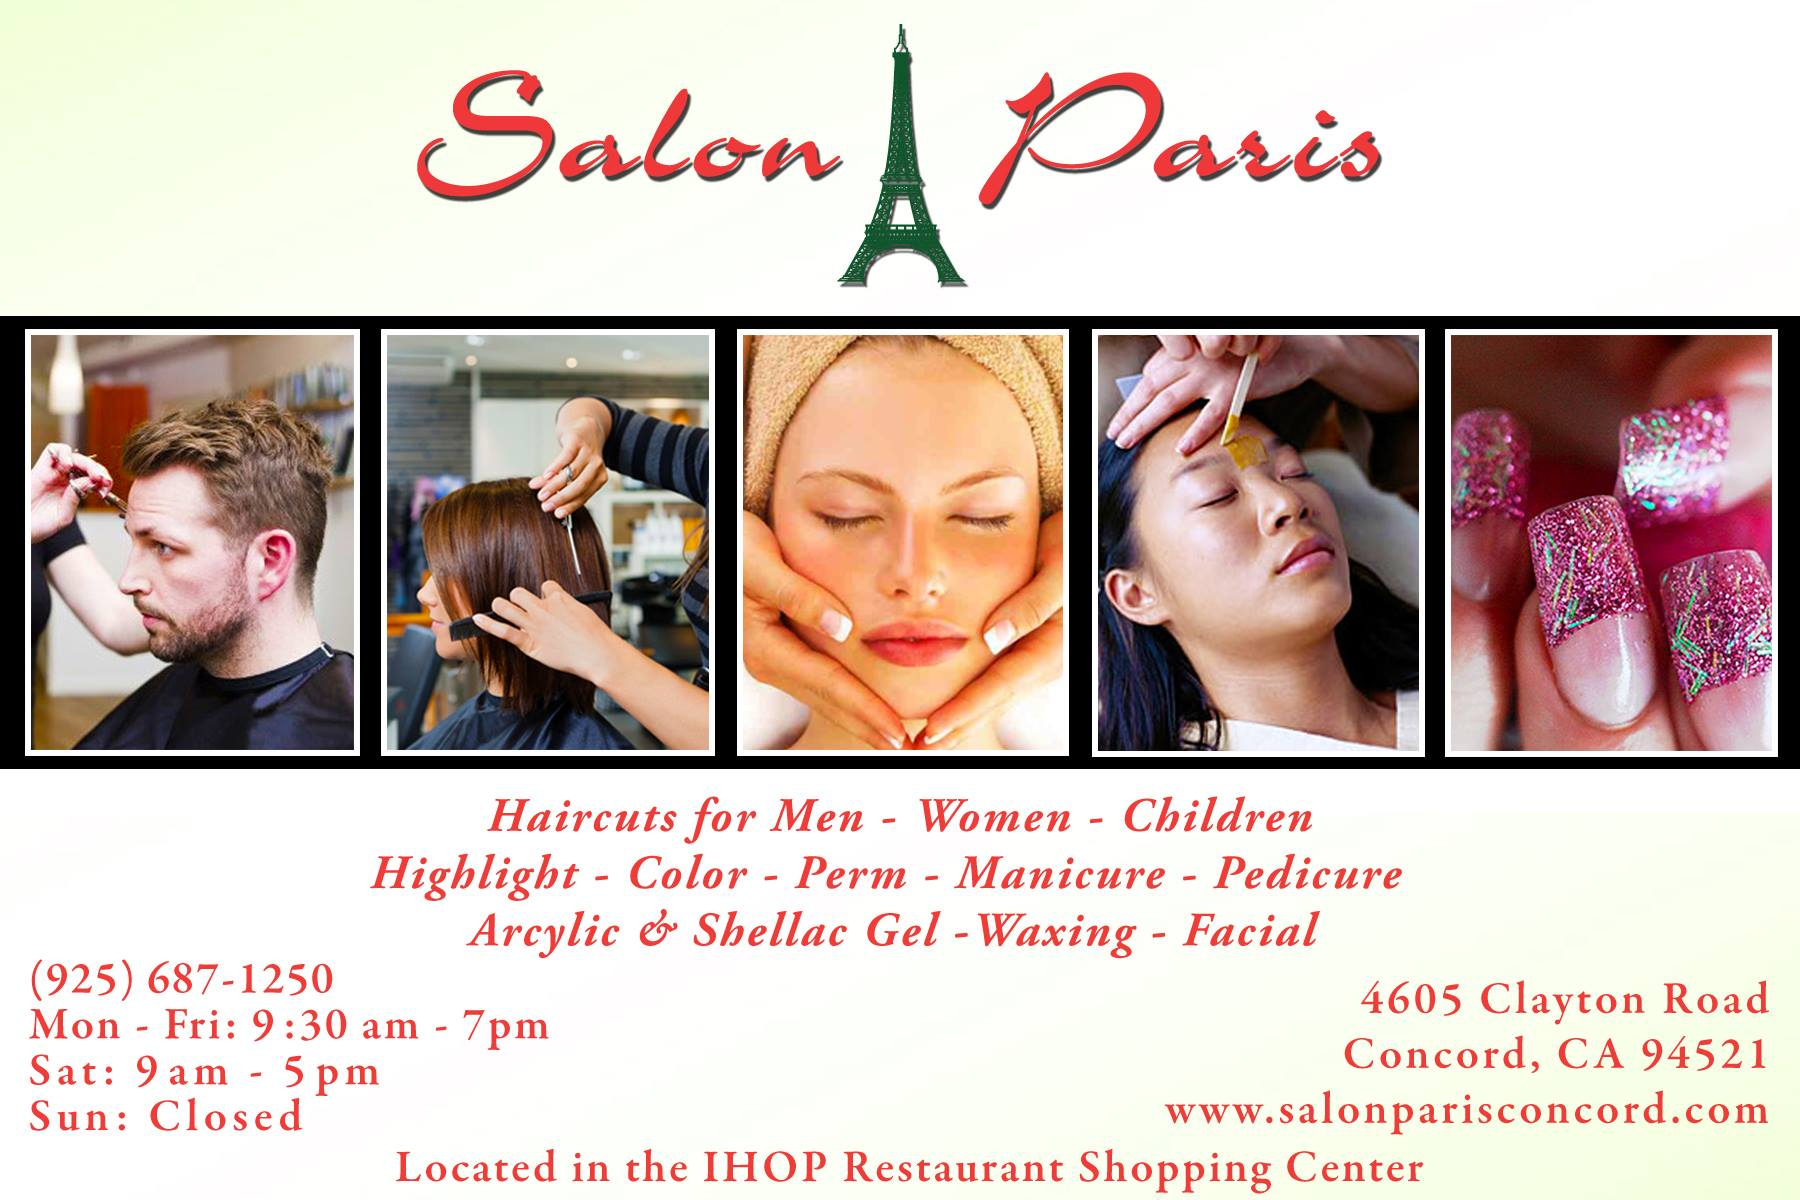 Salon Paris Postcard